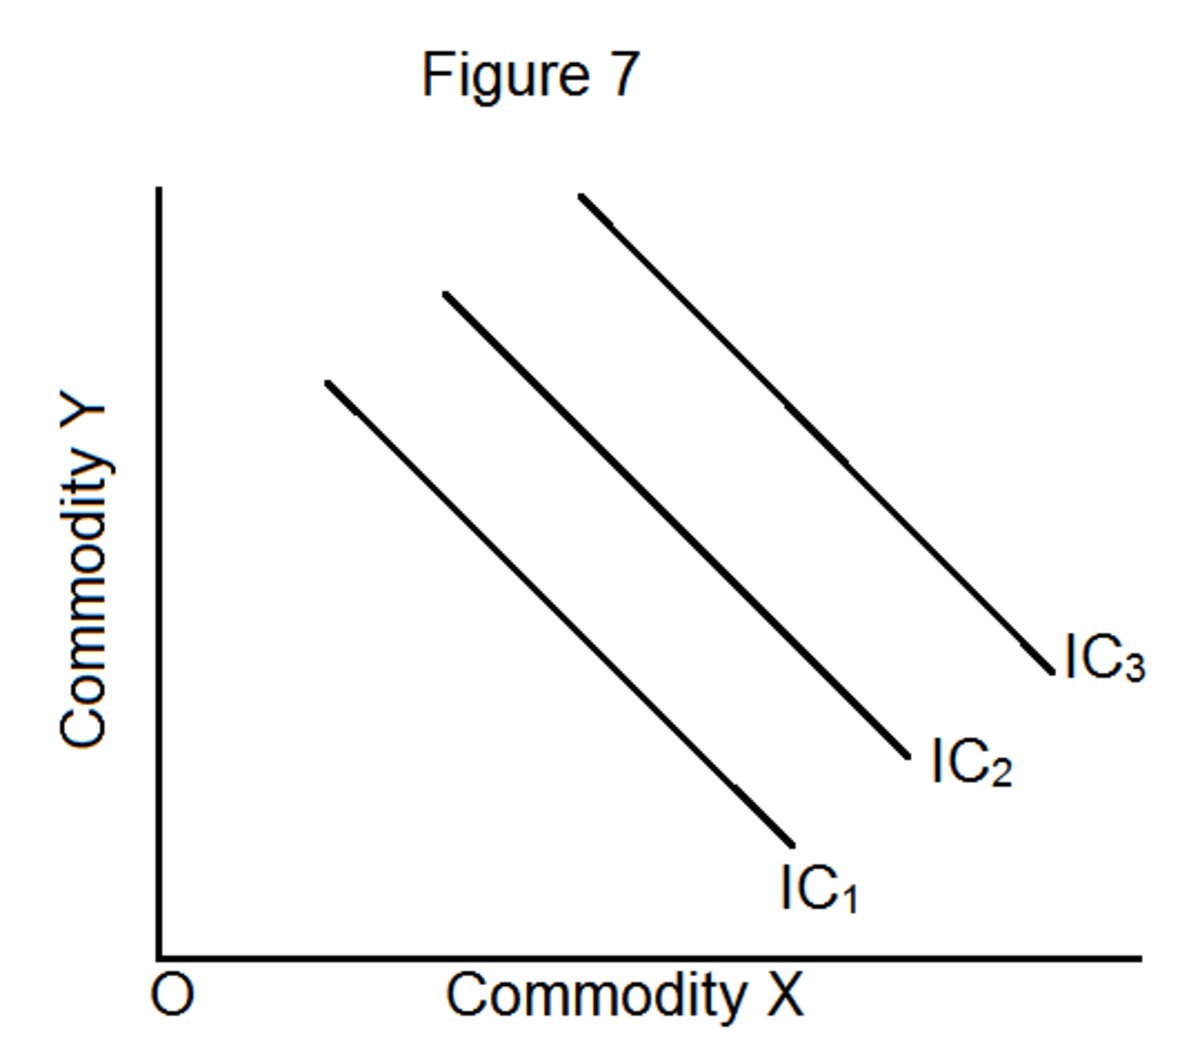 what-are-the-properties-of-the-indifference-curves